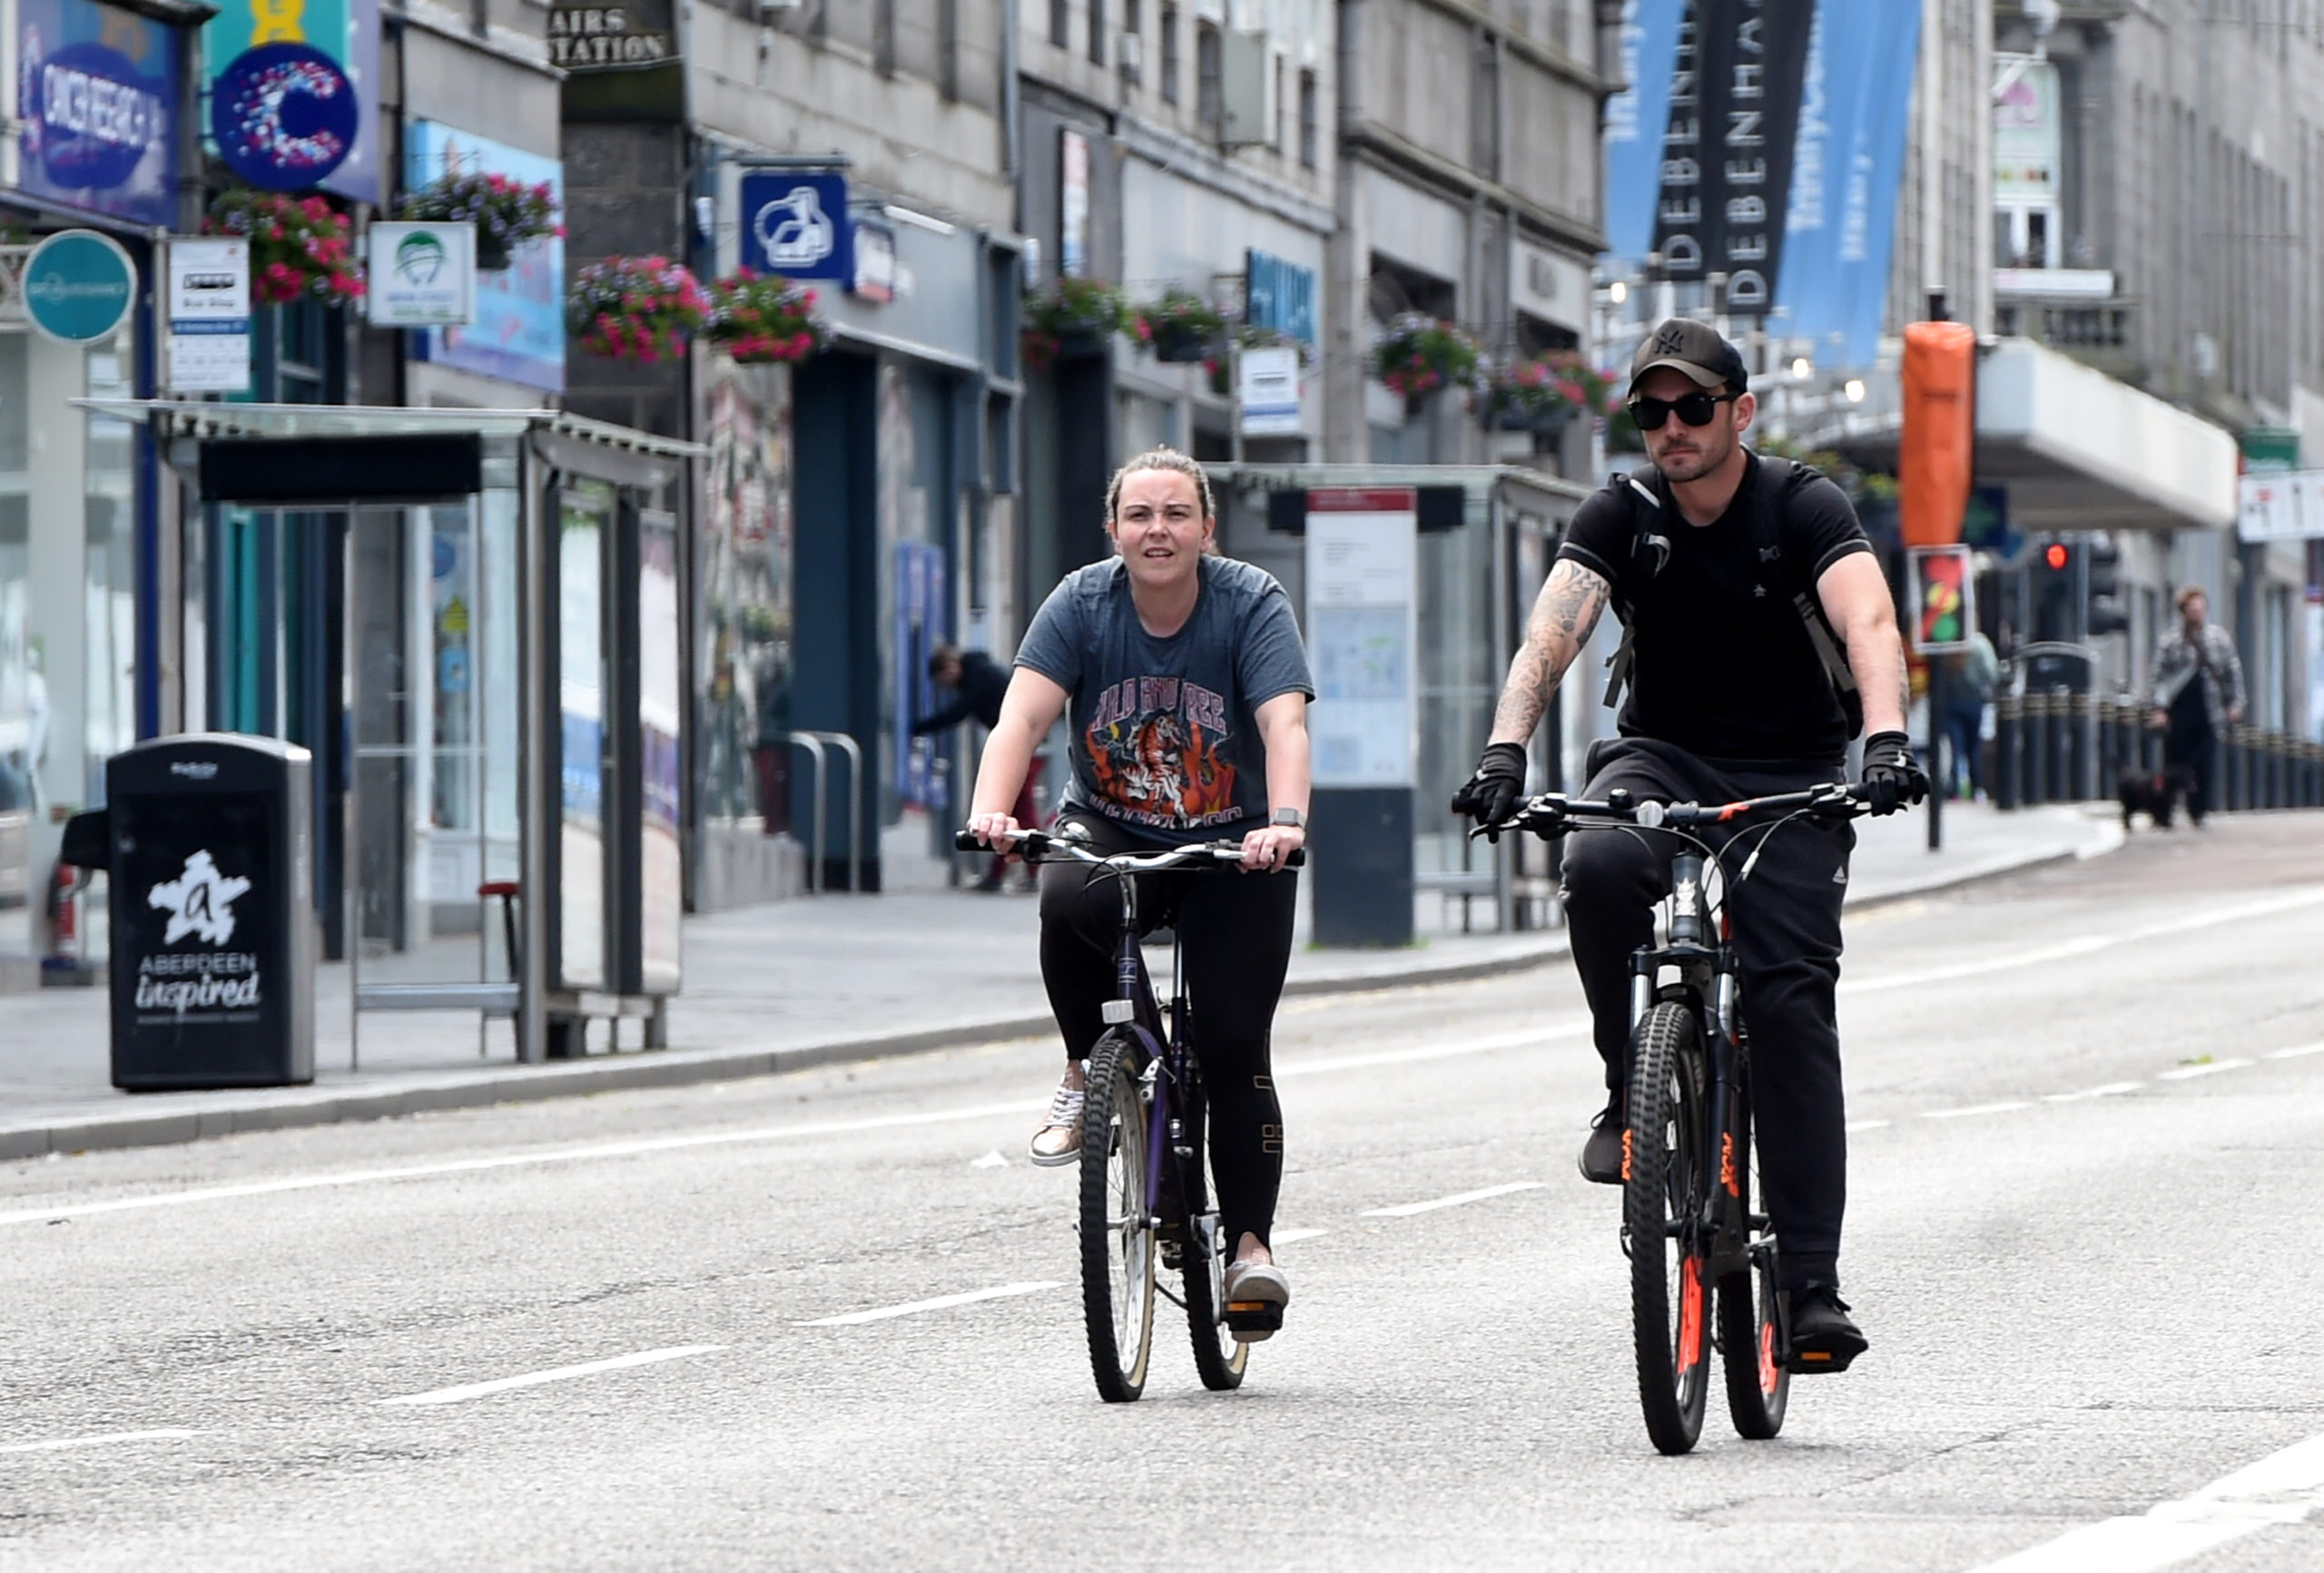 Cyclists enjoying a newly vacated Union Street - but for how long?